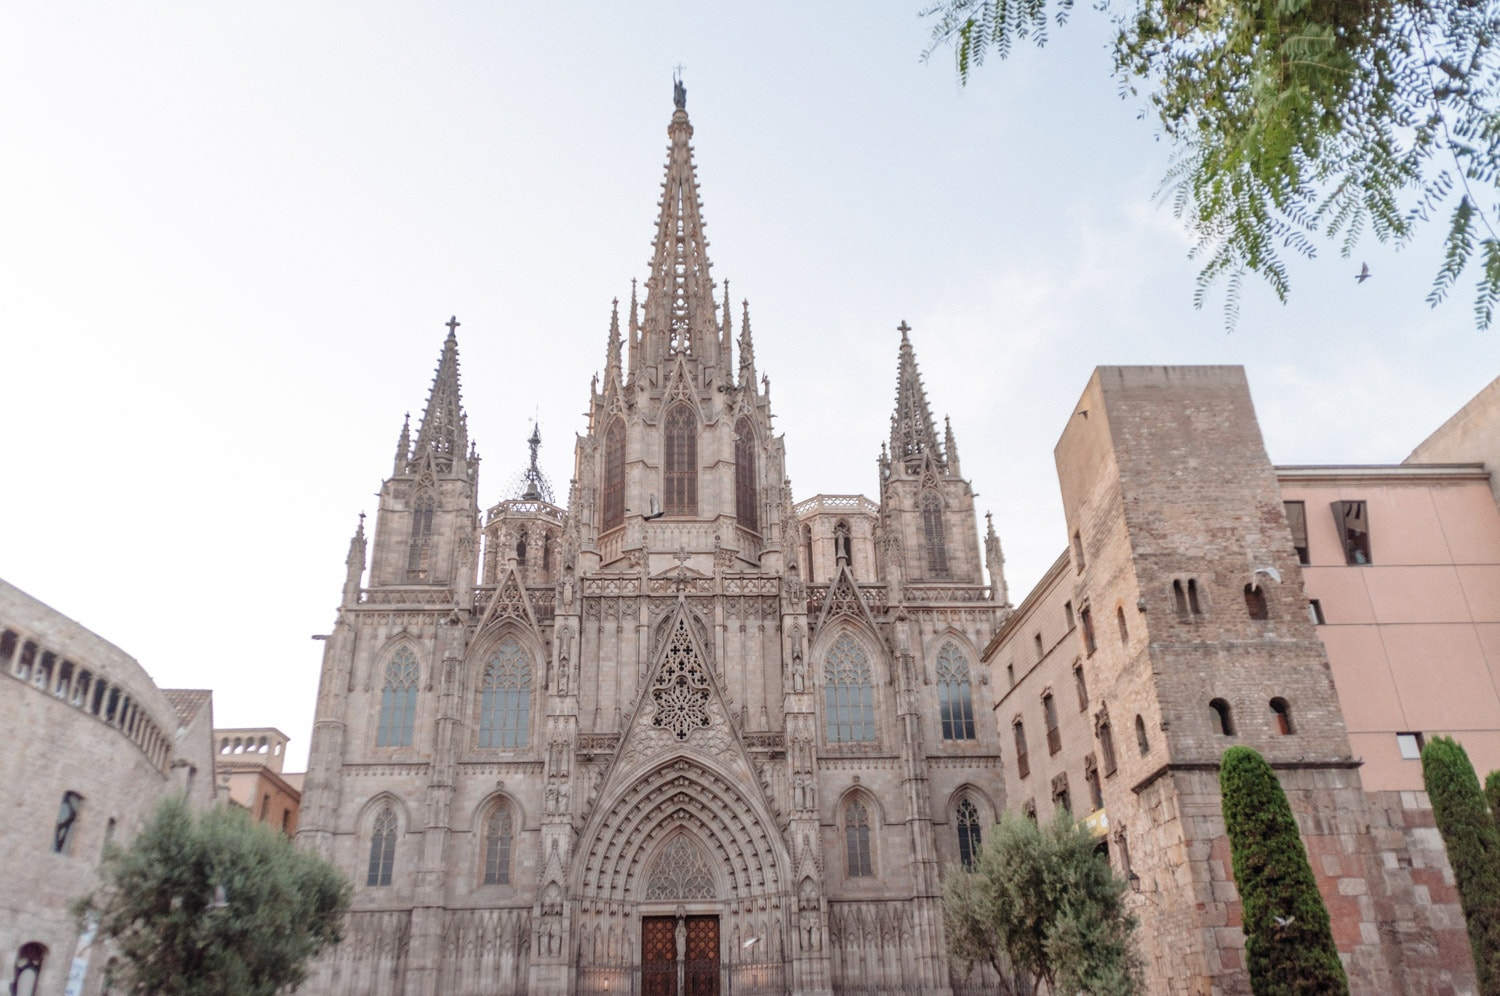 SCTP0030-CASTILLO-SPAIN-BARCELONA-GOTHIC QUARTER-40